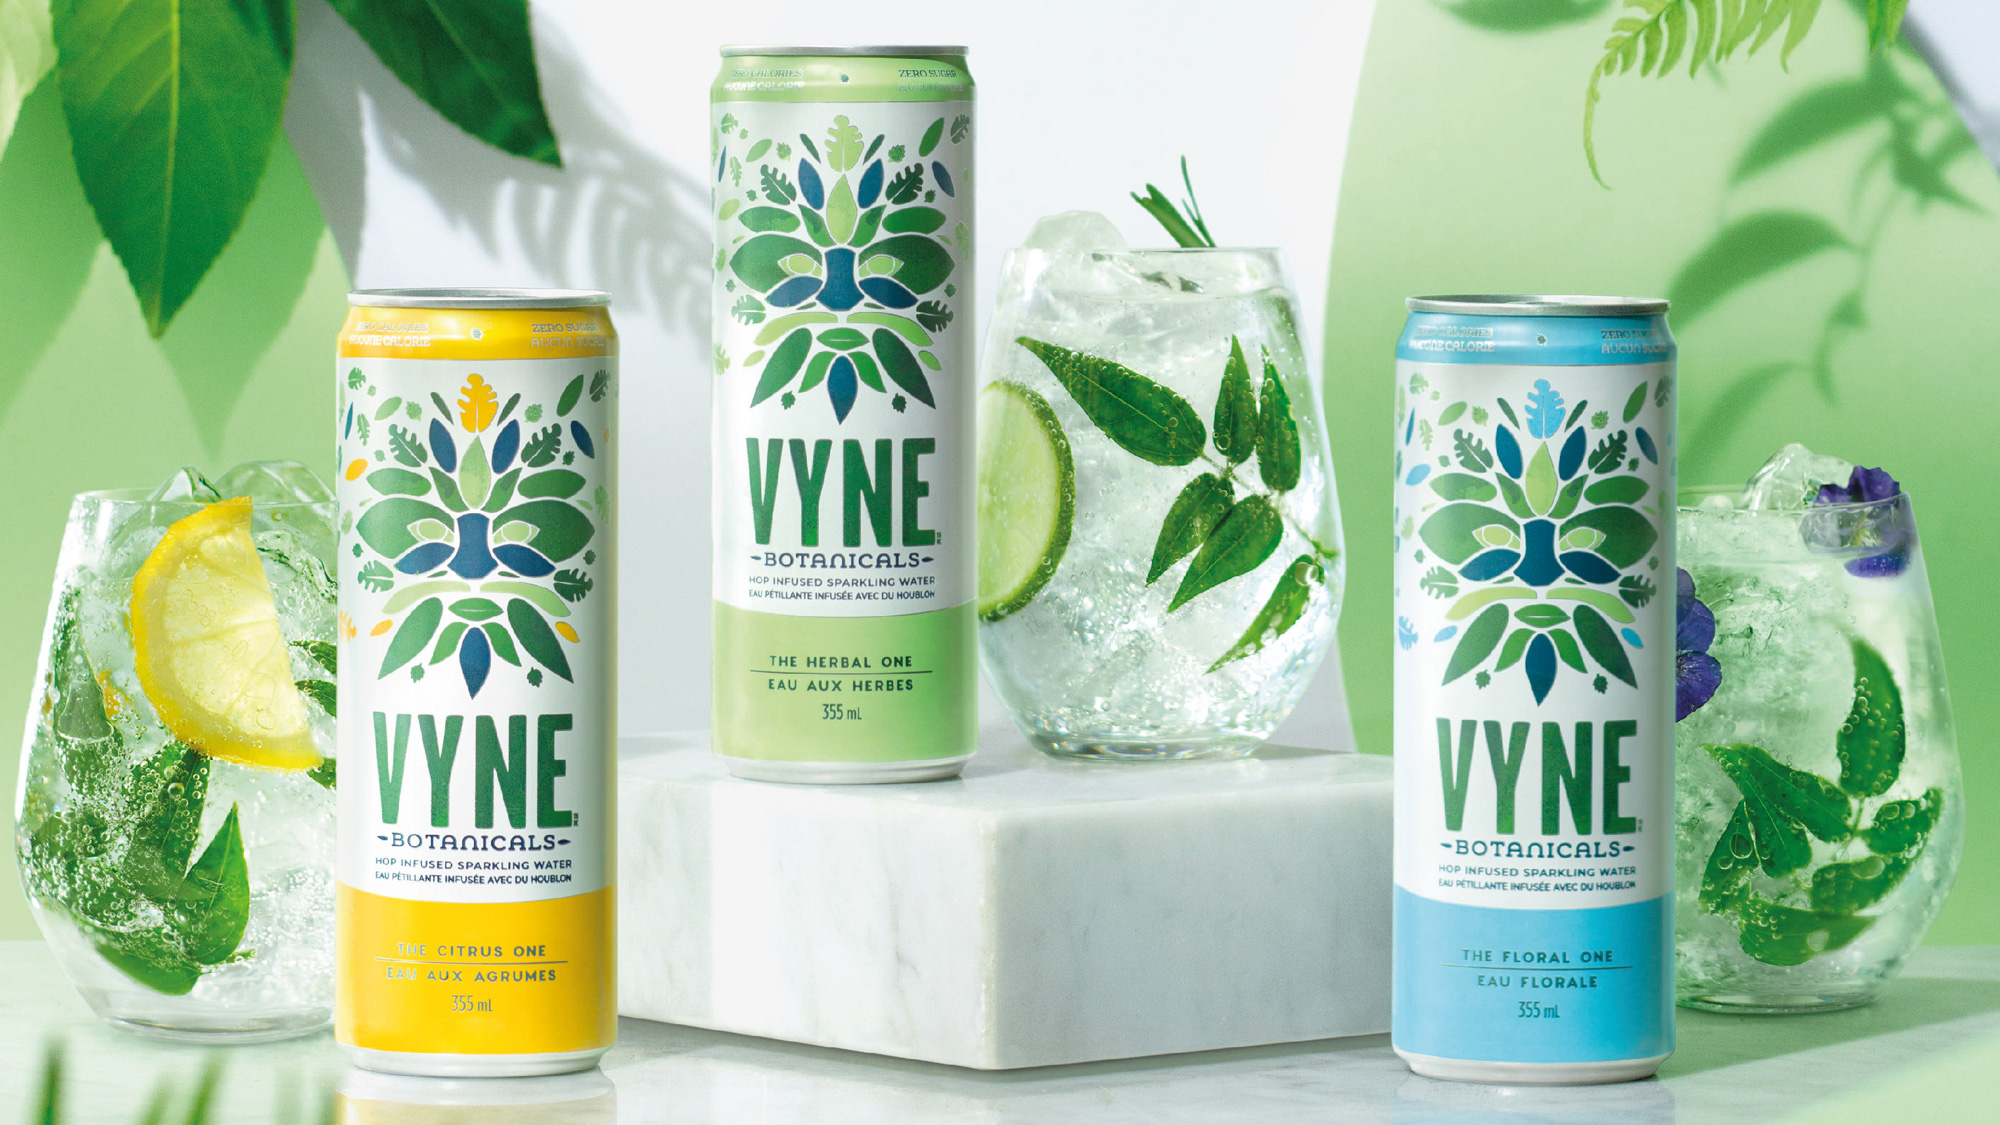 New Logo and Packaging for Vyne Botanicals by BrandOpus